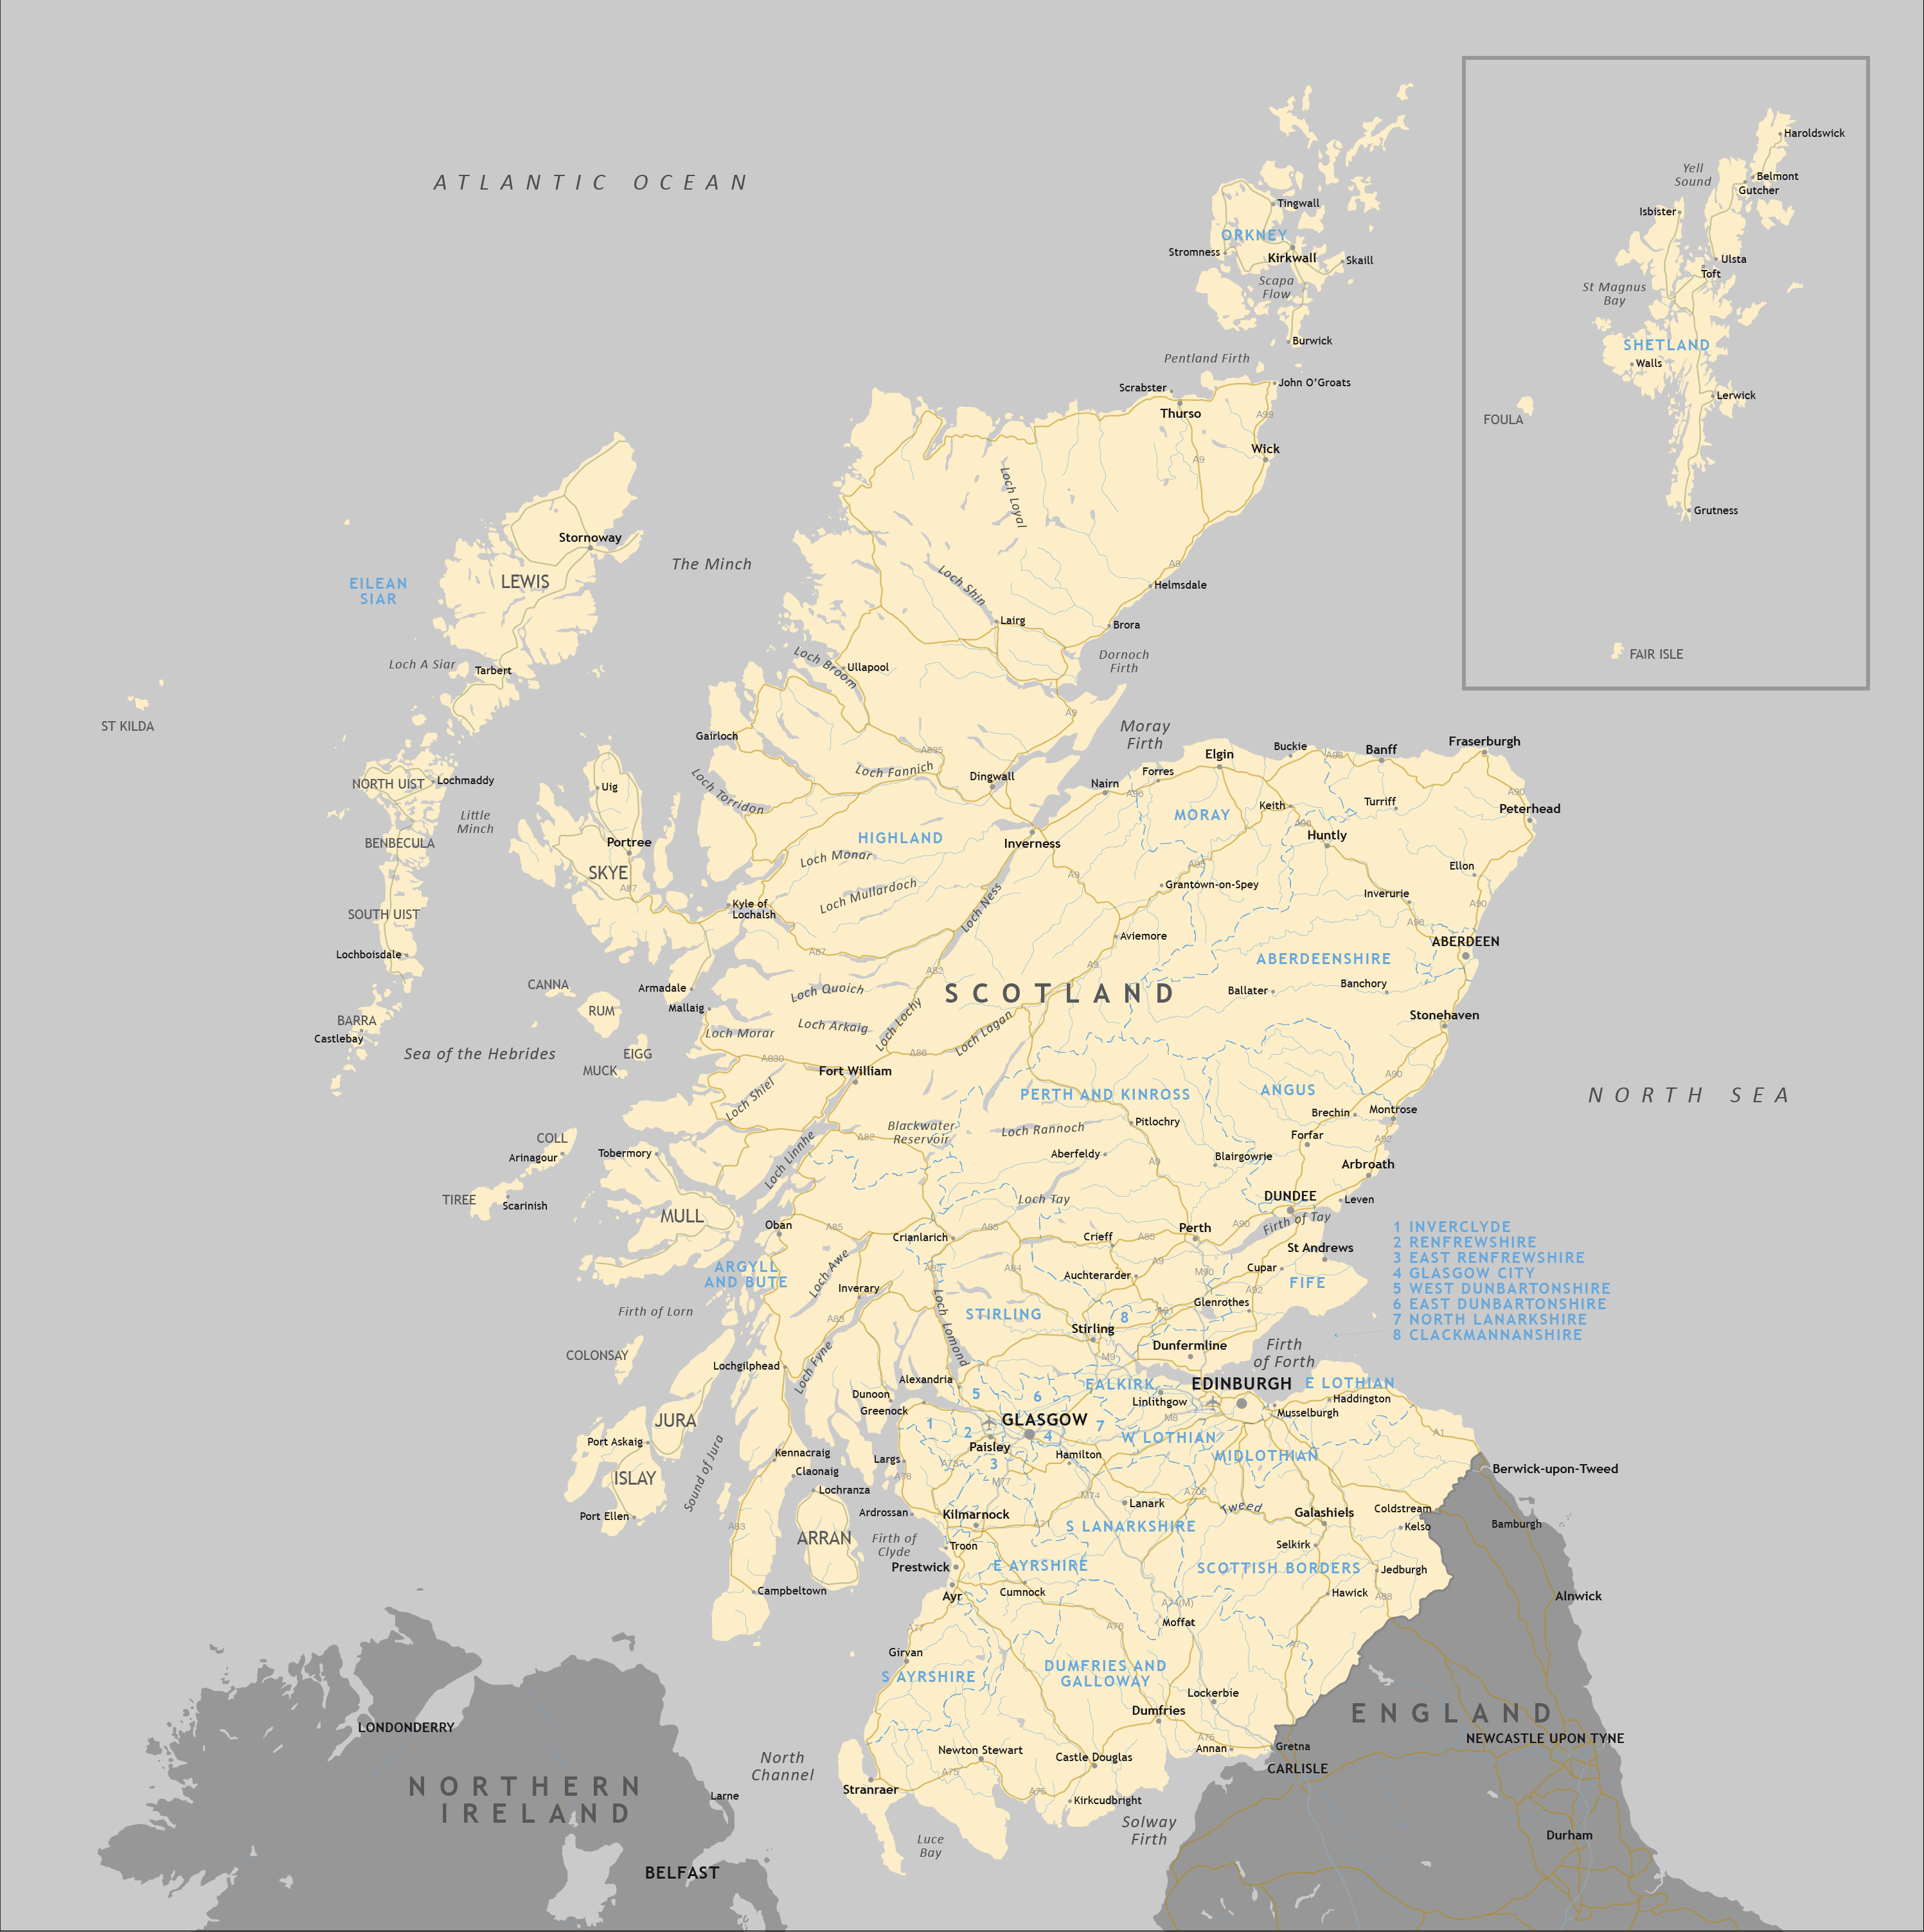 Political map of Scotland - royalty free editable vector map ... on map of english channel, republic of ireland, edinburgh castle, map of united kingdom, northern ireland, map of ireland, map of philippines, isle of man, united states of america, william wallace, scottish highlands, map of european countries, map of british isles, map of jersey, united kingdom, map of shetland islands, loch ness, map of stonehenge, map of united states, map of world, map of uk, map of denmark, map of manchester, map of the low countries, map of austria, map of wales, map of rhine river, map of jordan, flag of scotland, map of alberta, great britain, scottish people,